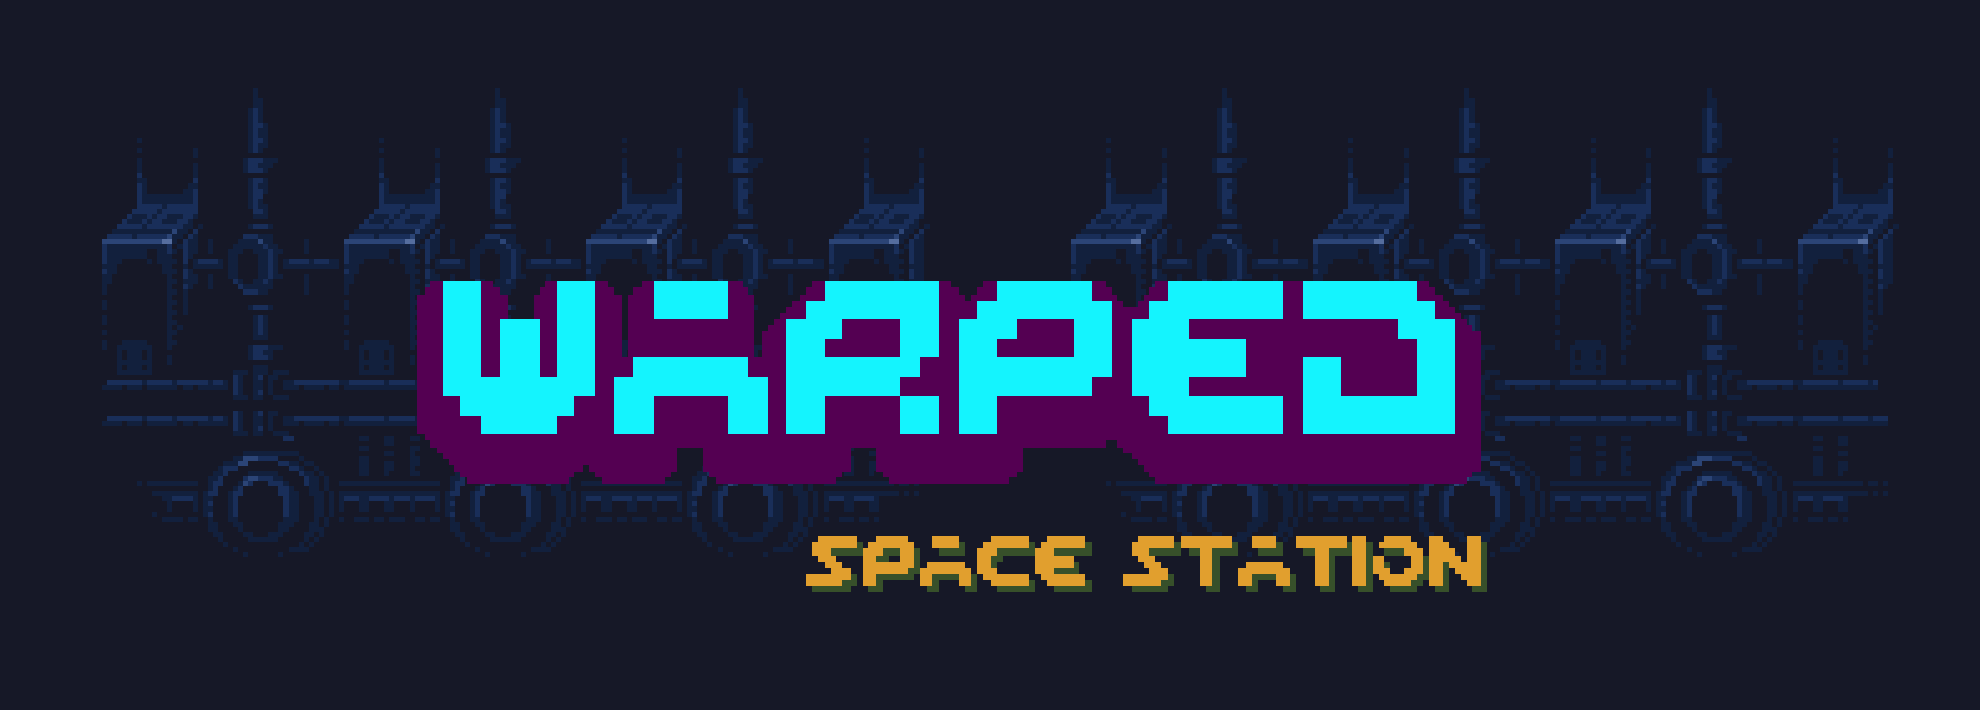 Warped - Space Station